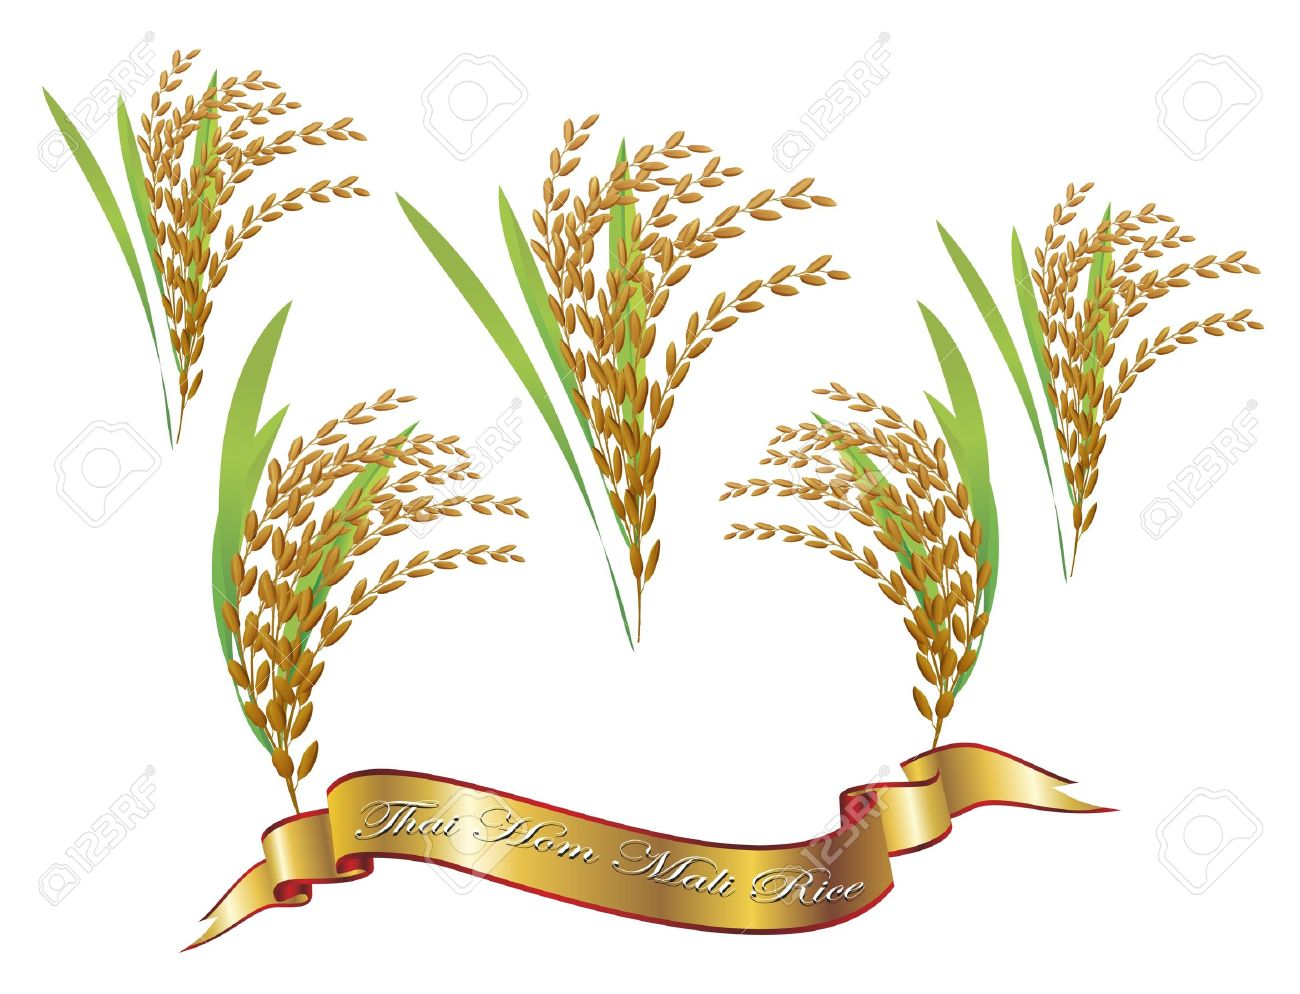 hight resolution of 1300x994 oat clipart rice plant 20 rice plant sketch